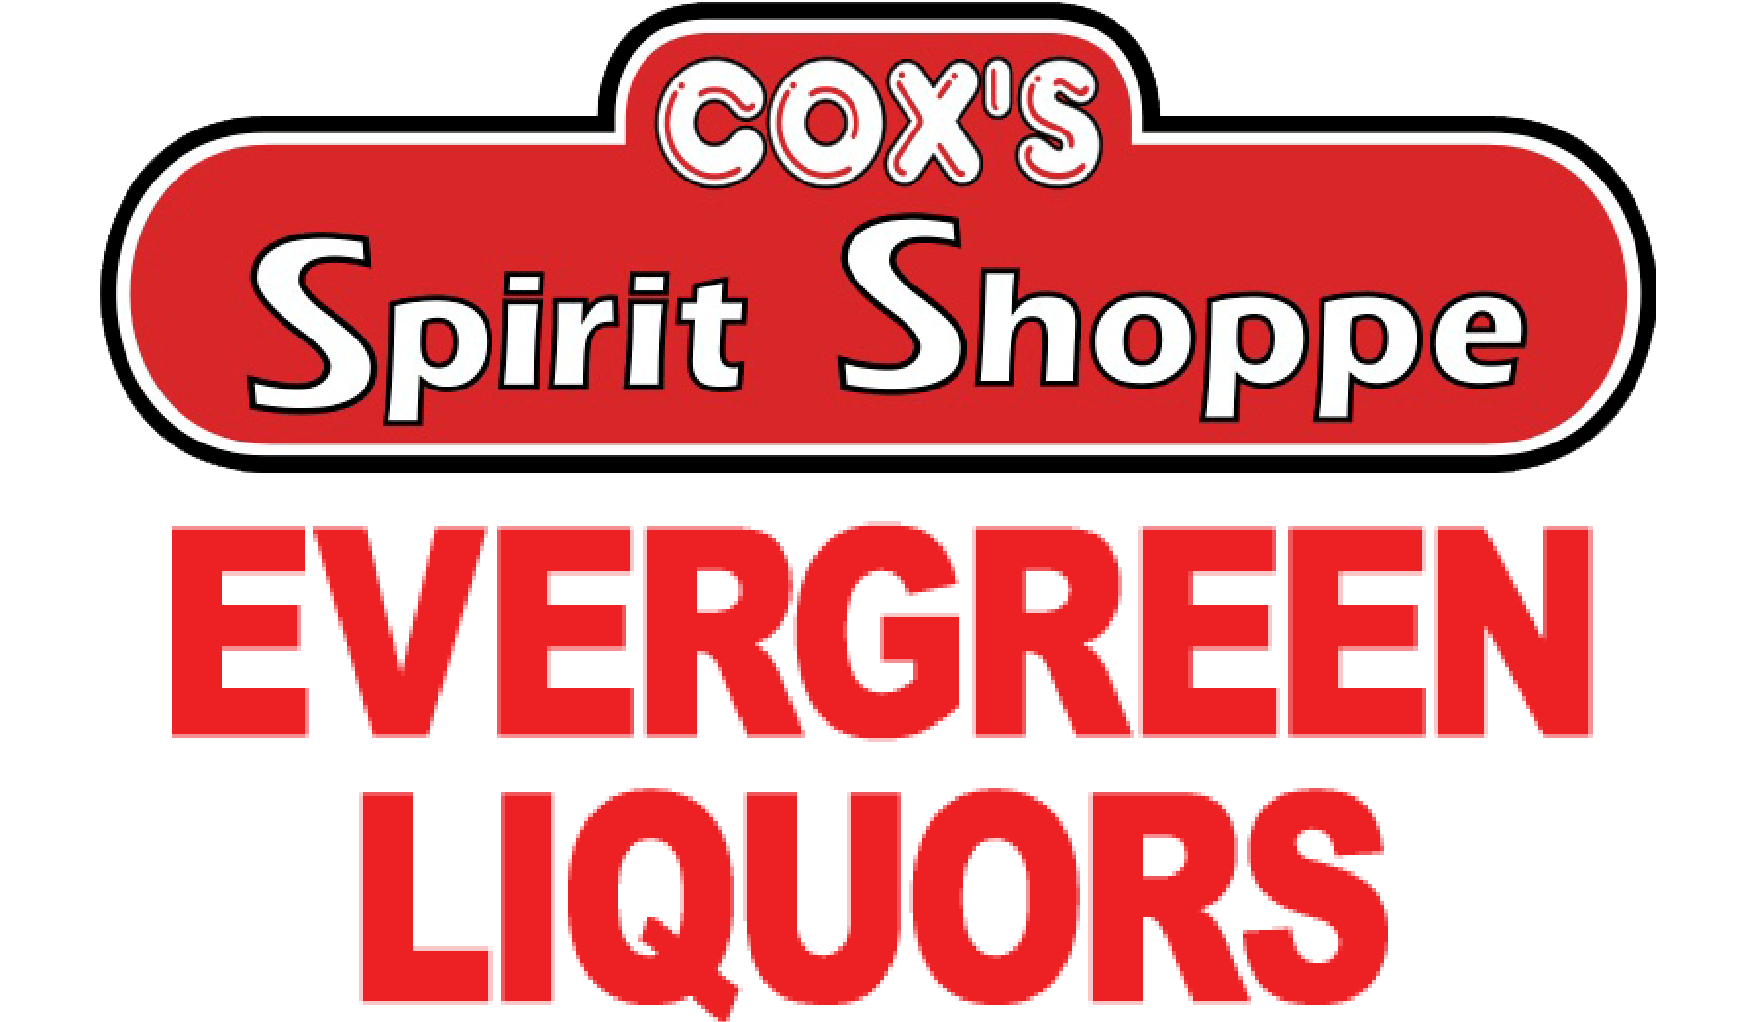 Cox's Spirit Shoppe & Evergreen Liquors